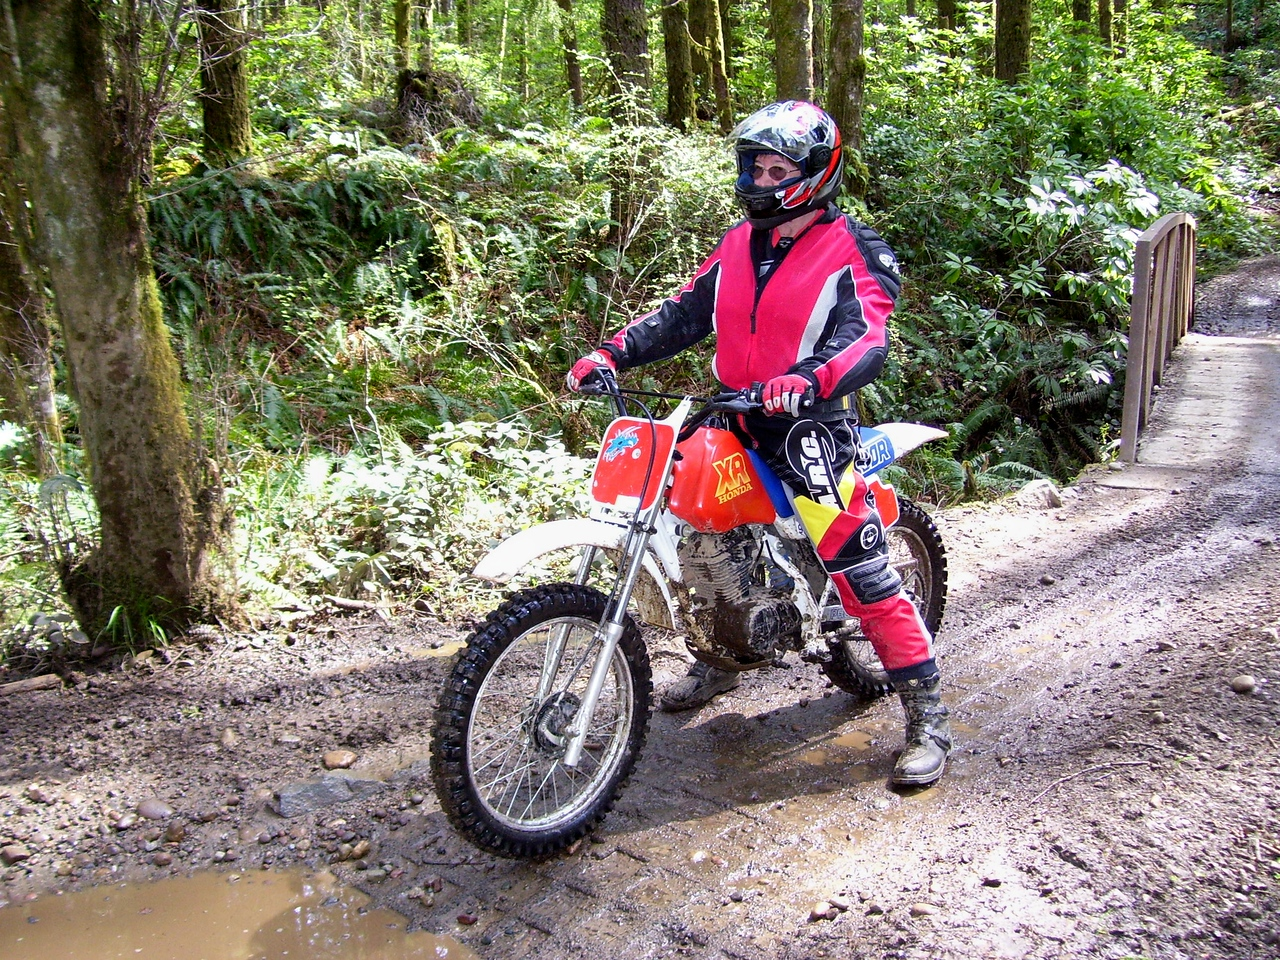 SuperSyl is getting a 2006 CRF 150F to replace her XR 100. But this little bike will stay in the family. At least 4 or 5 friends and relatives have learned to ride motorcycles on this bike.